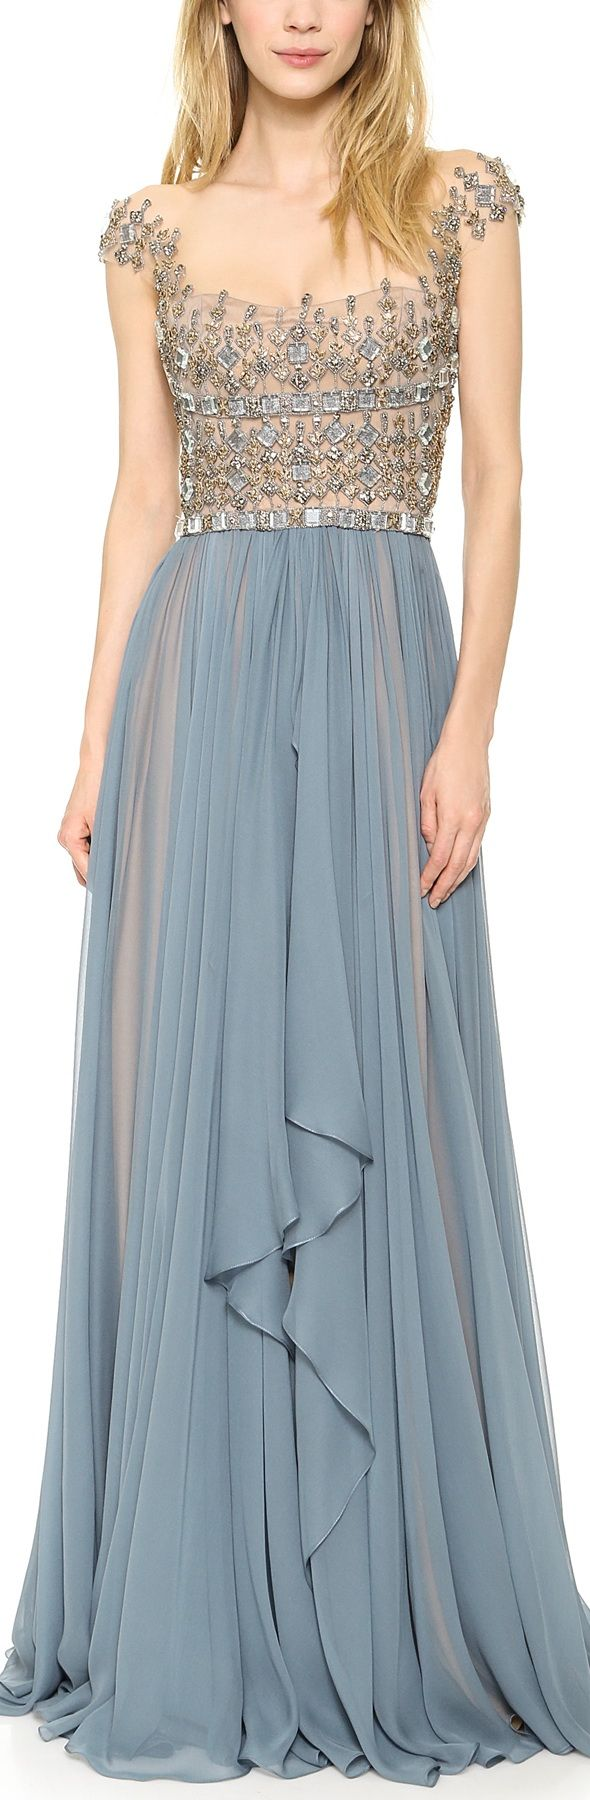 DesertRose,;,Reem Acra Embroidered Illusion Drop Shoulder Gown Blue Smoke,;,